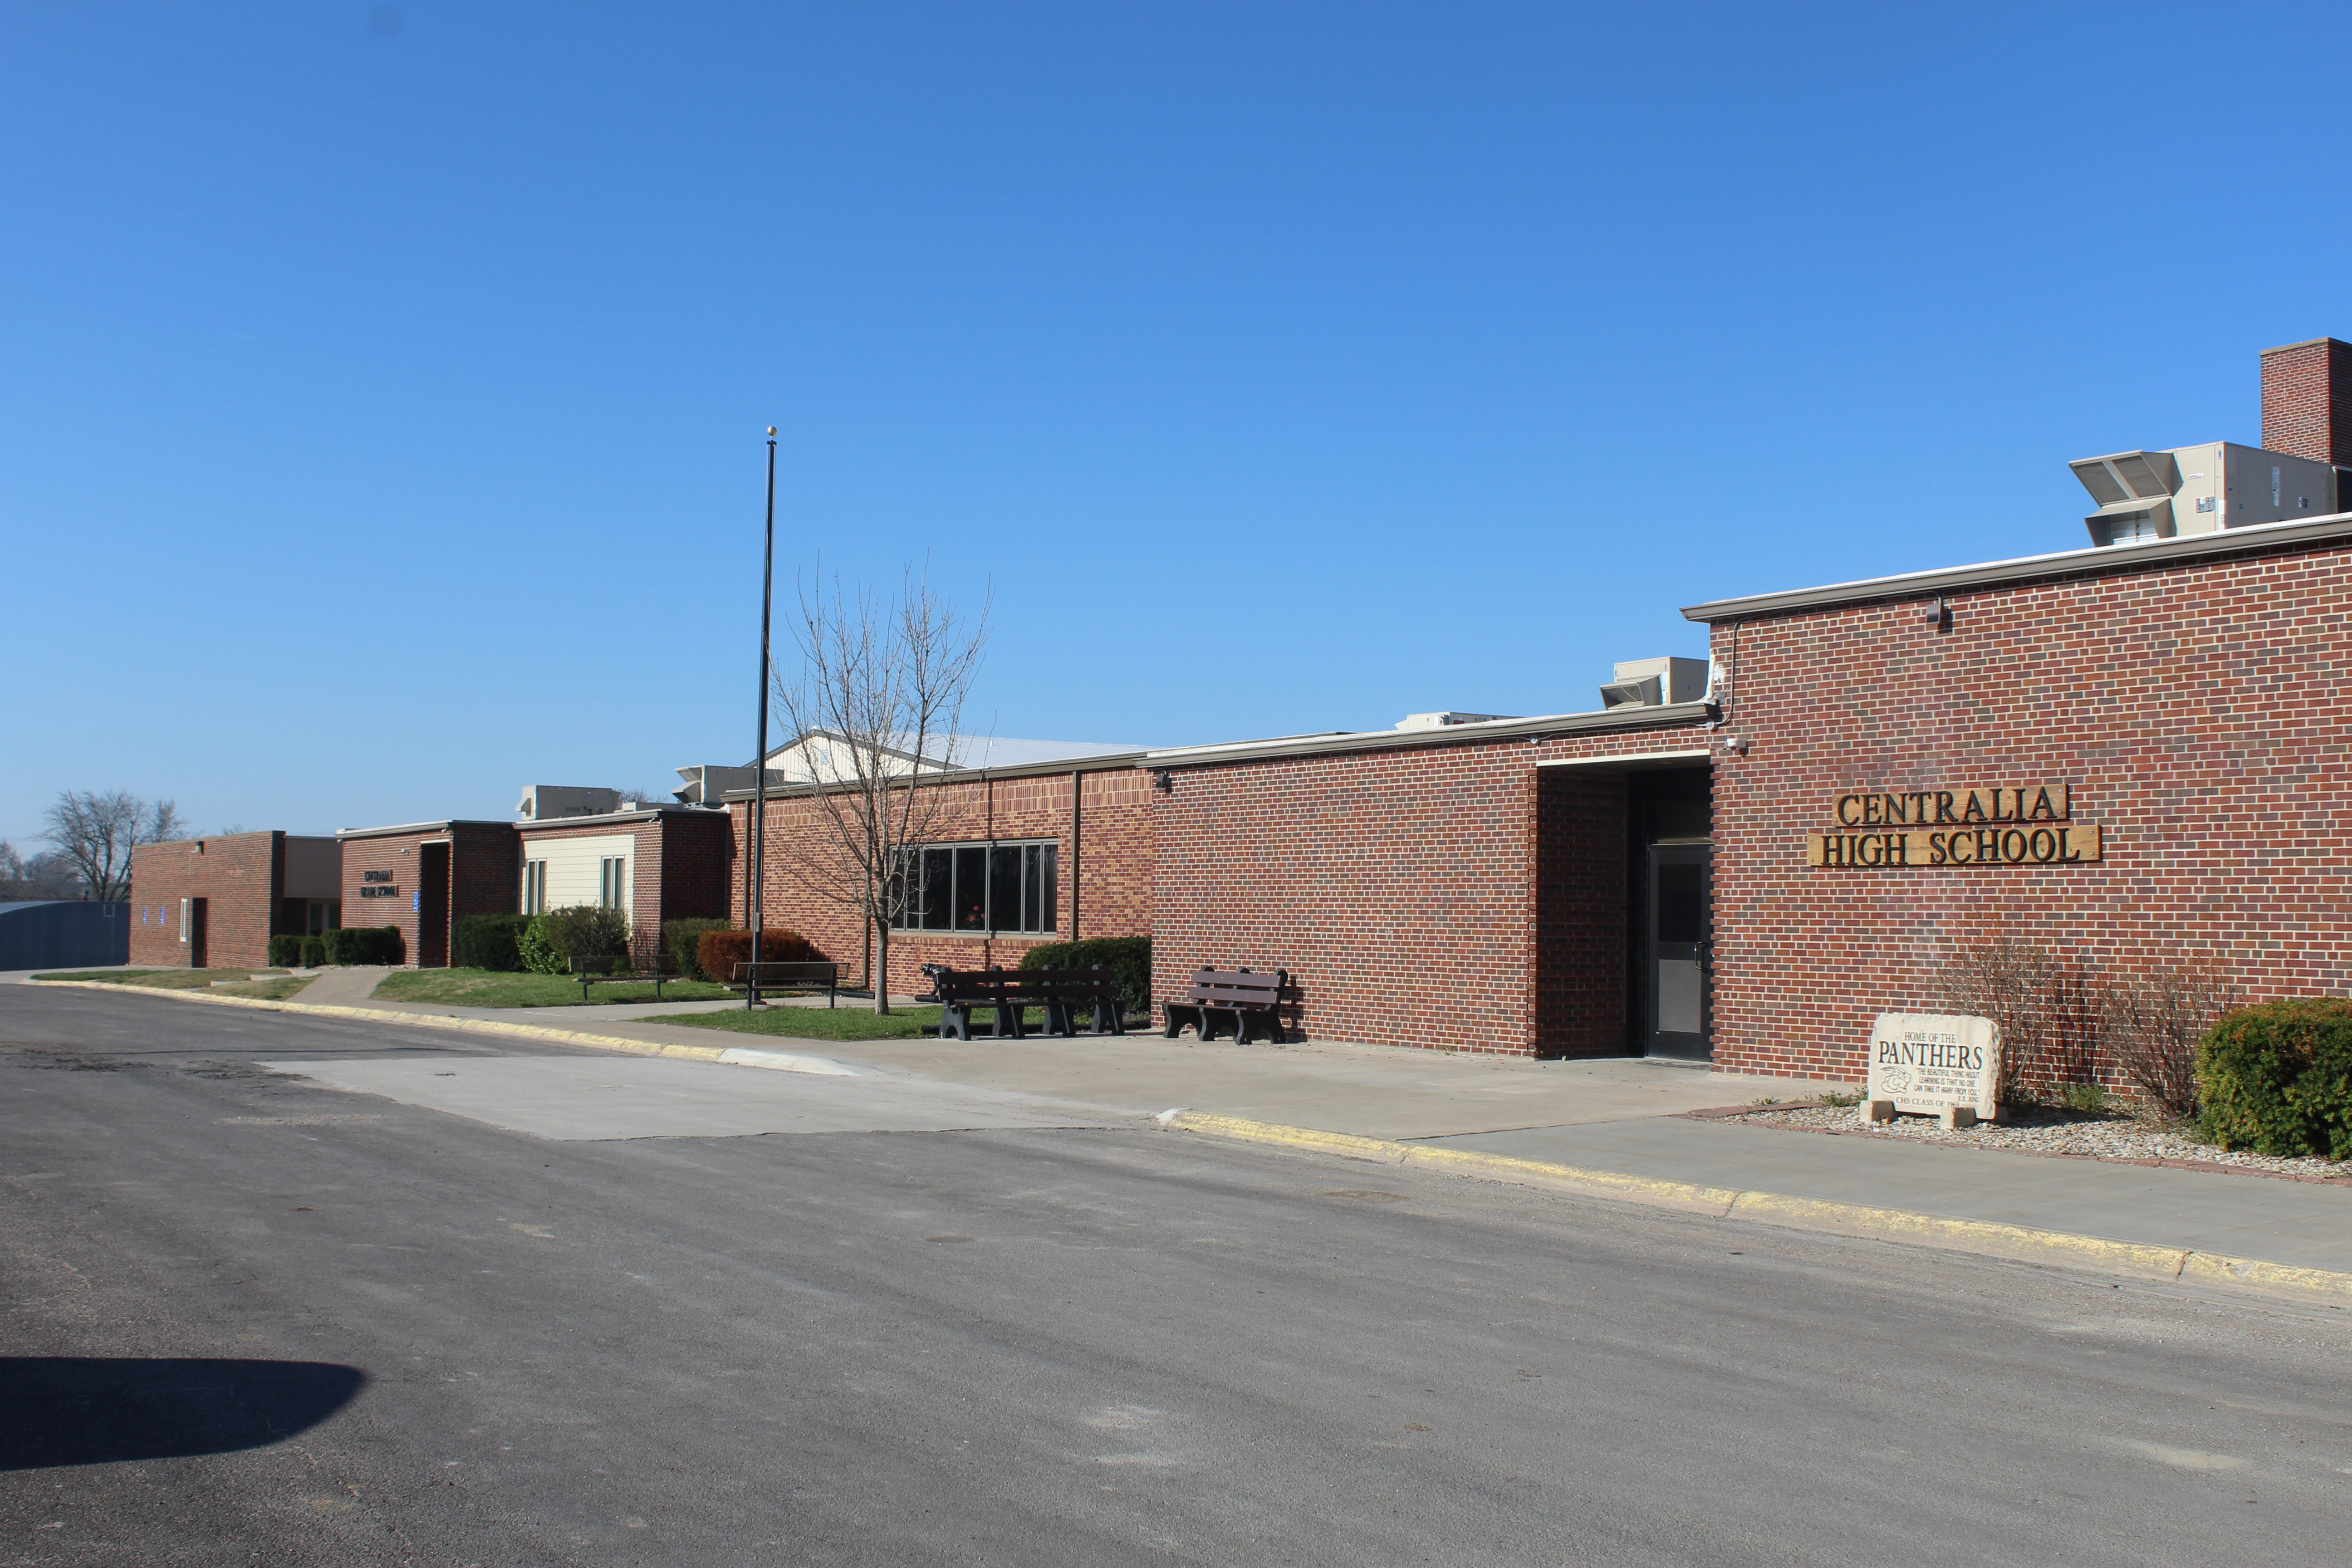 Picture of Centralia School Entrance